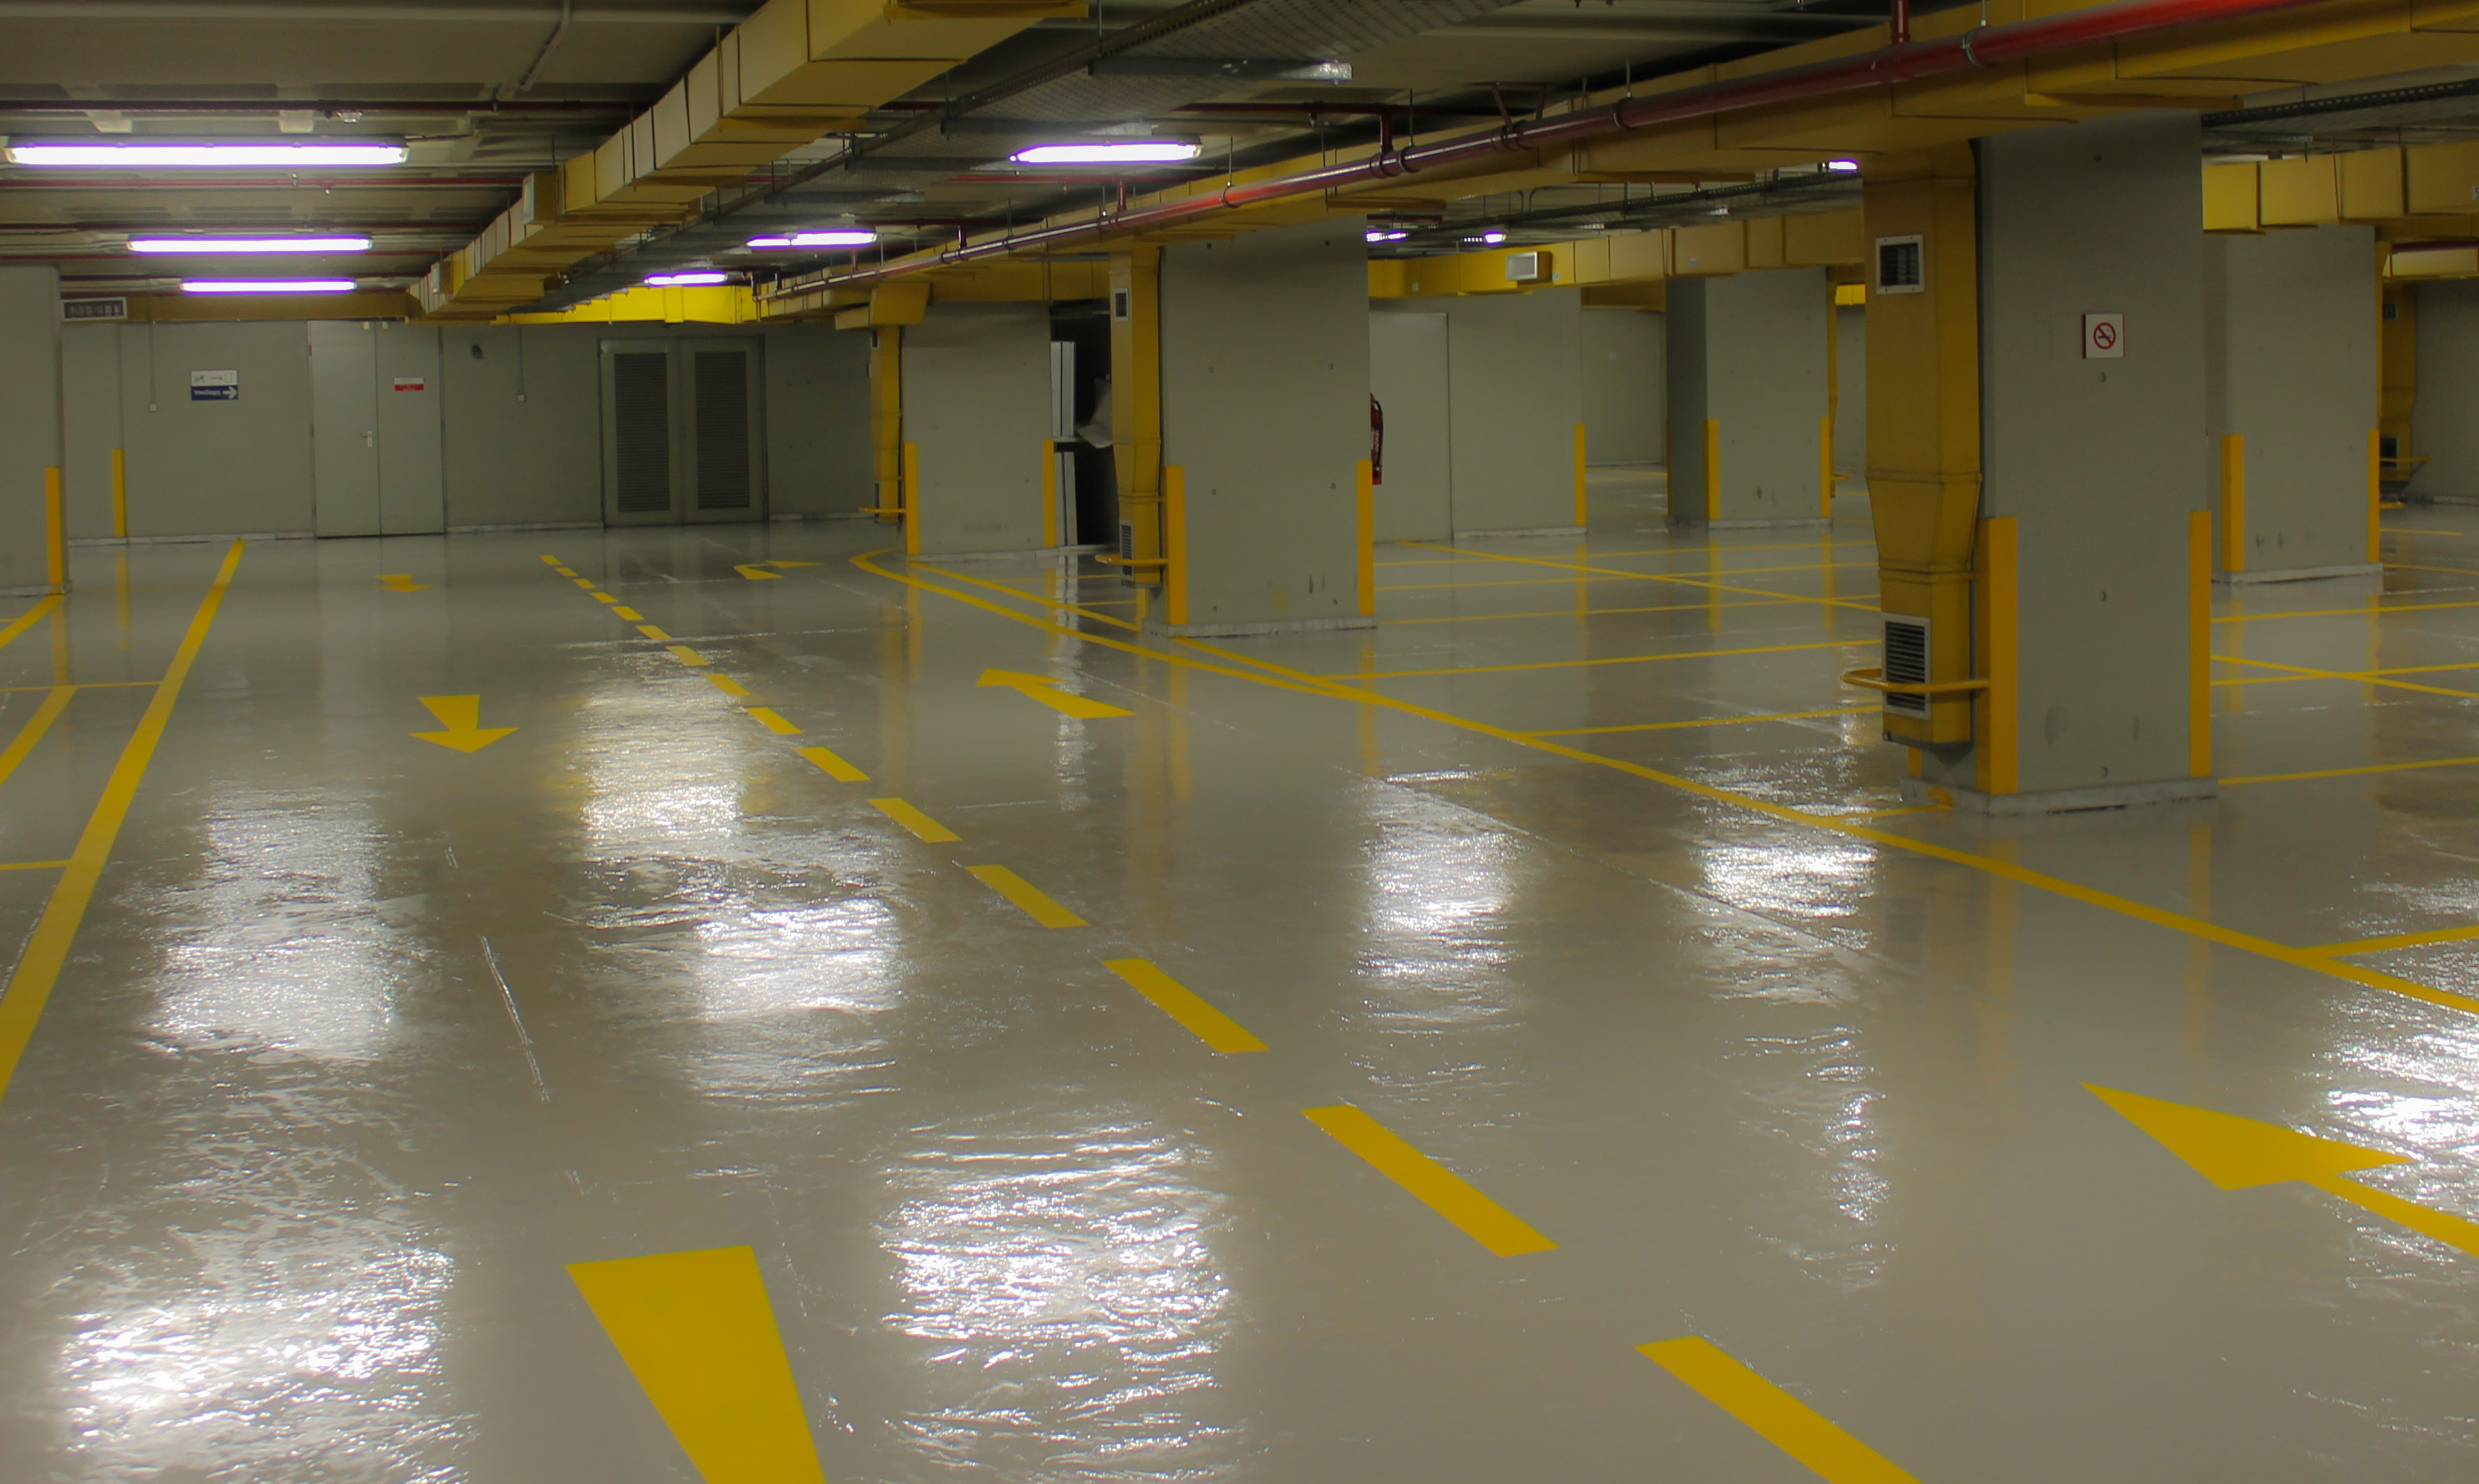 Garage Epoxy Cure Time Epoxy Vs Polyurethane Floors What Are The Differences